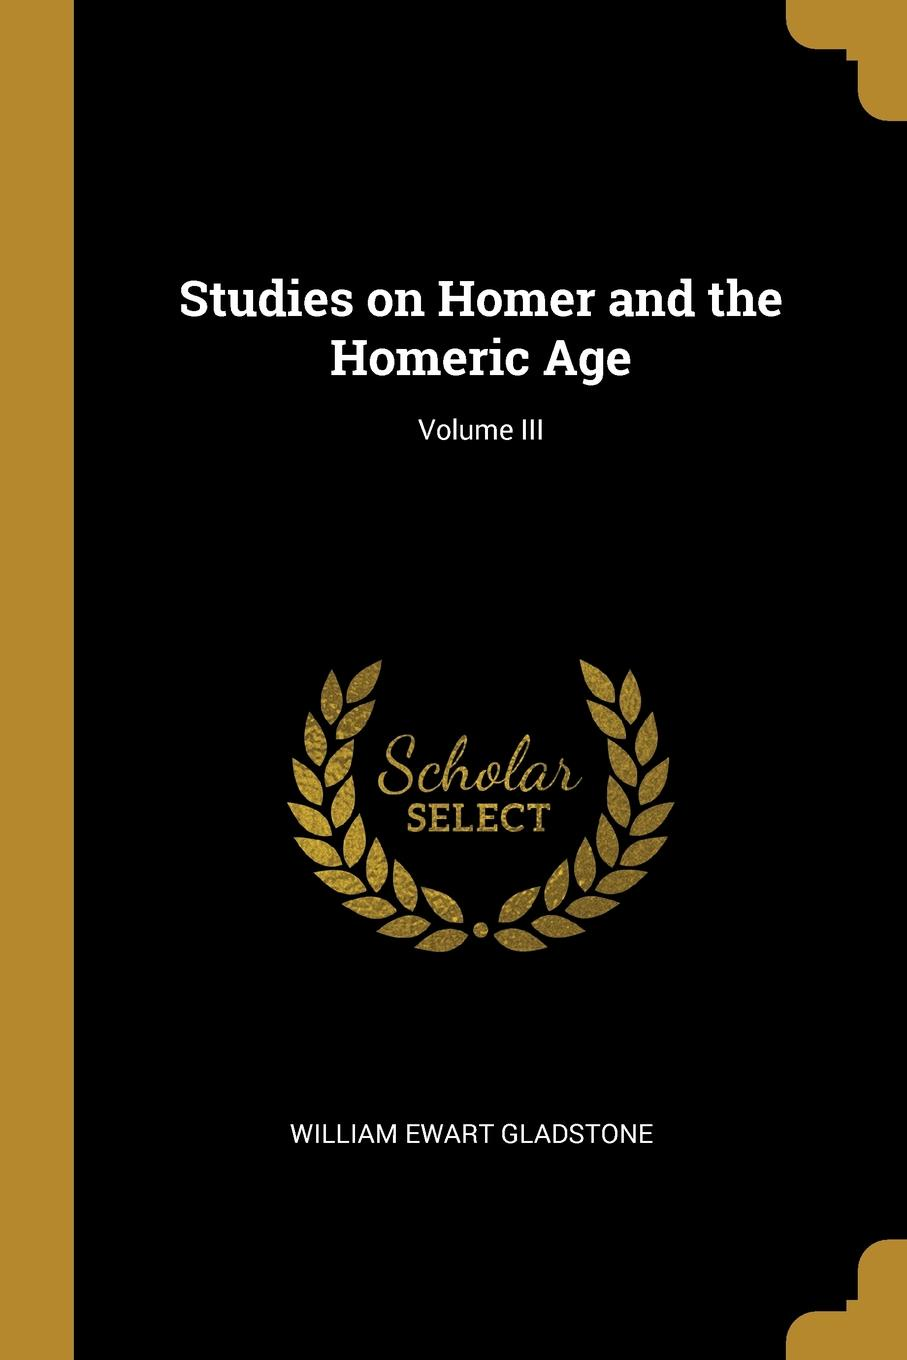 William Ewart Gladstone Studies on Homer and the Homeric Age; Volume III gladstone william ewart studies on homer and the homeric age vol 3 of 3